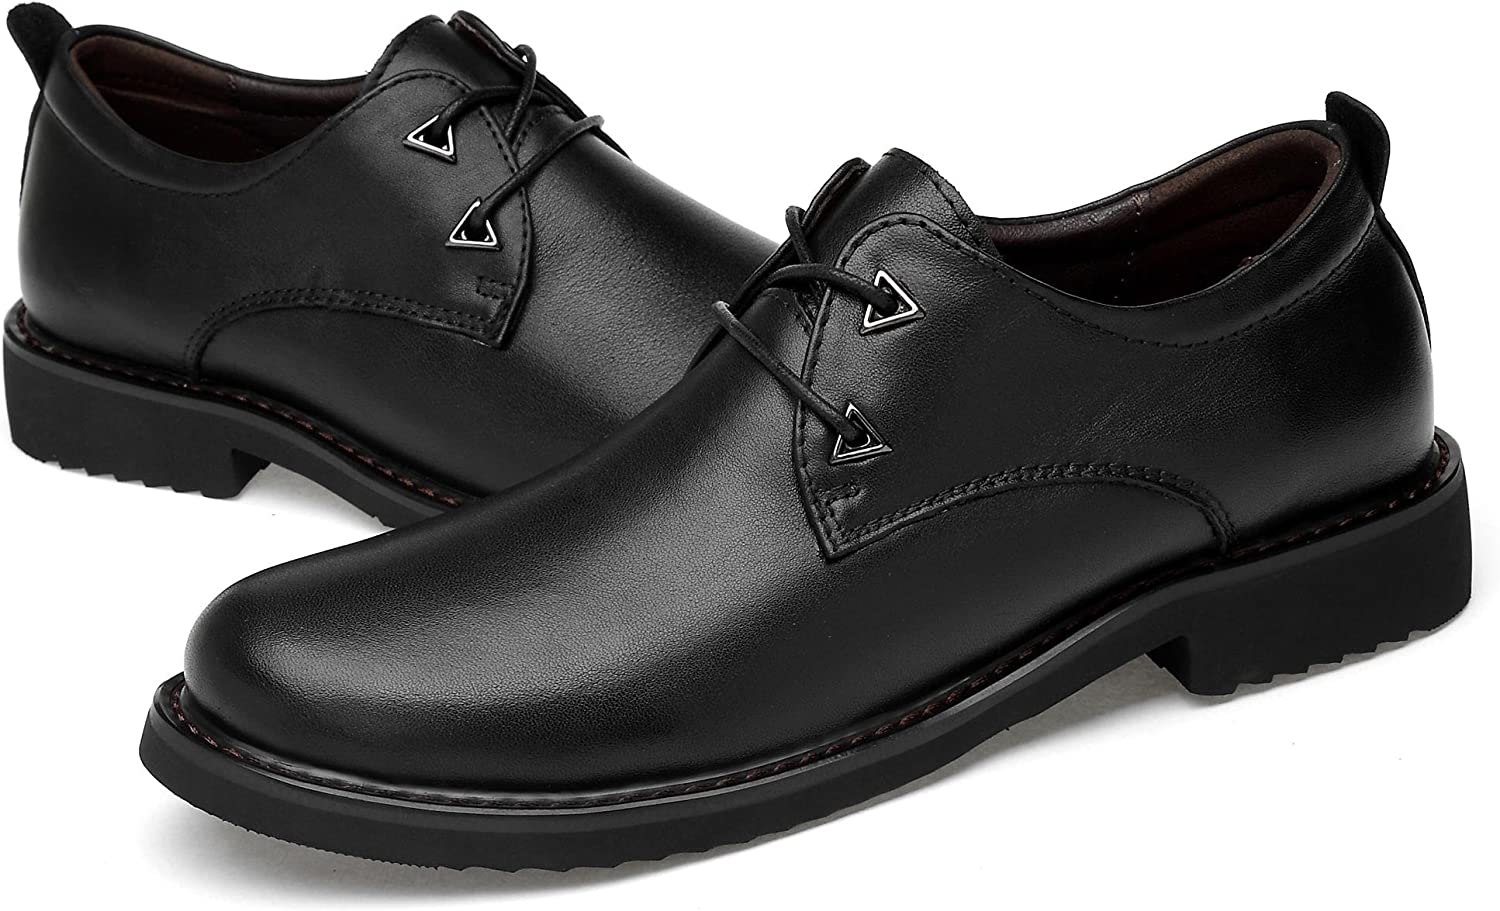 KEEPwhiteE Men' s Genuine Leather British Business Dressing shoes Oxfords